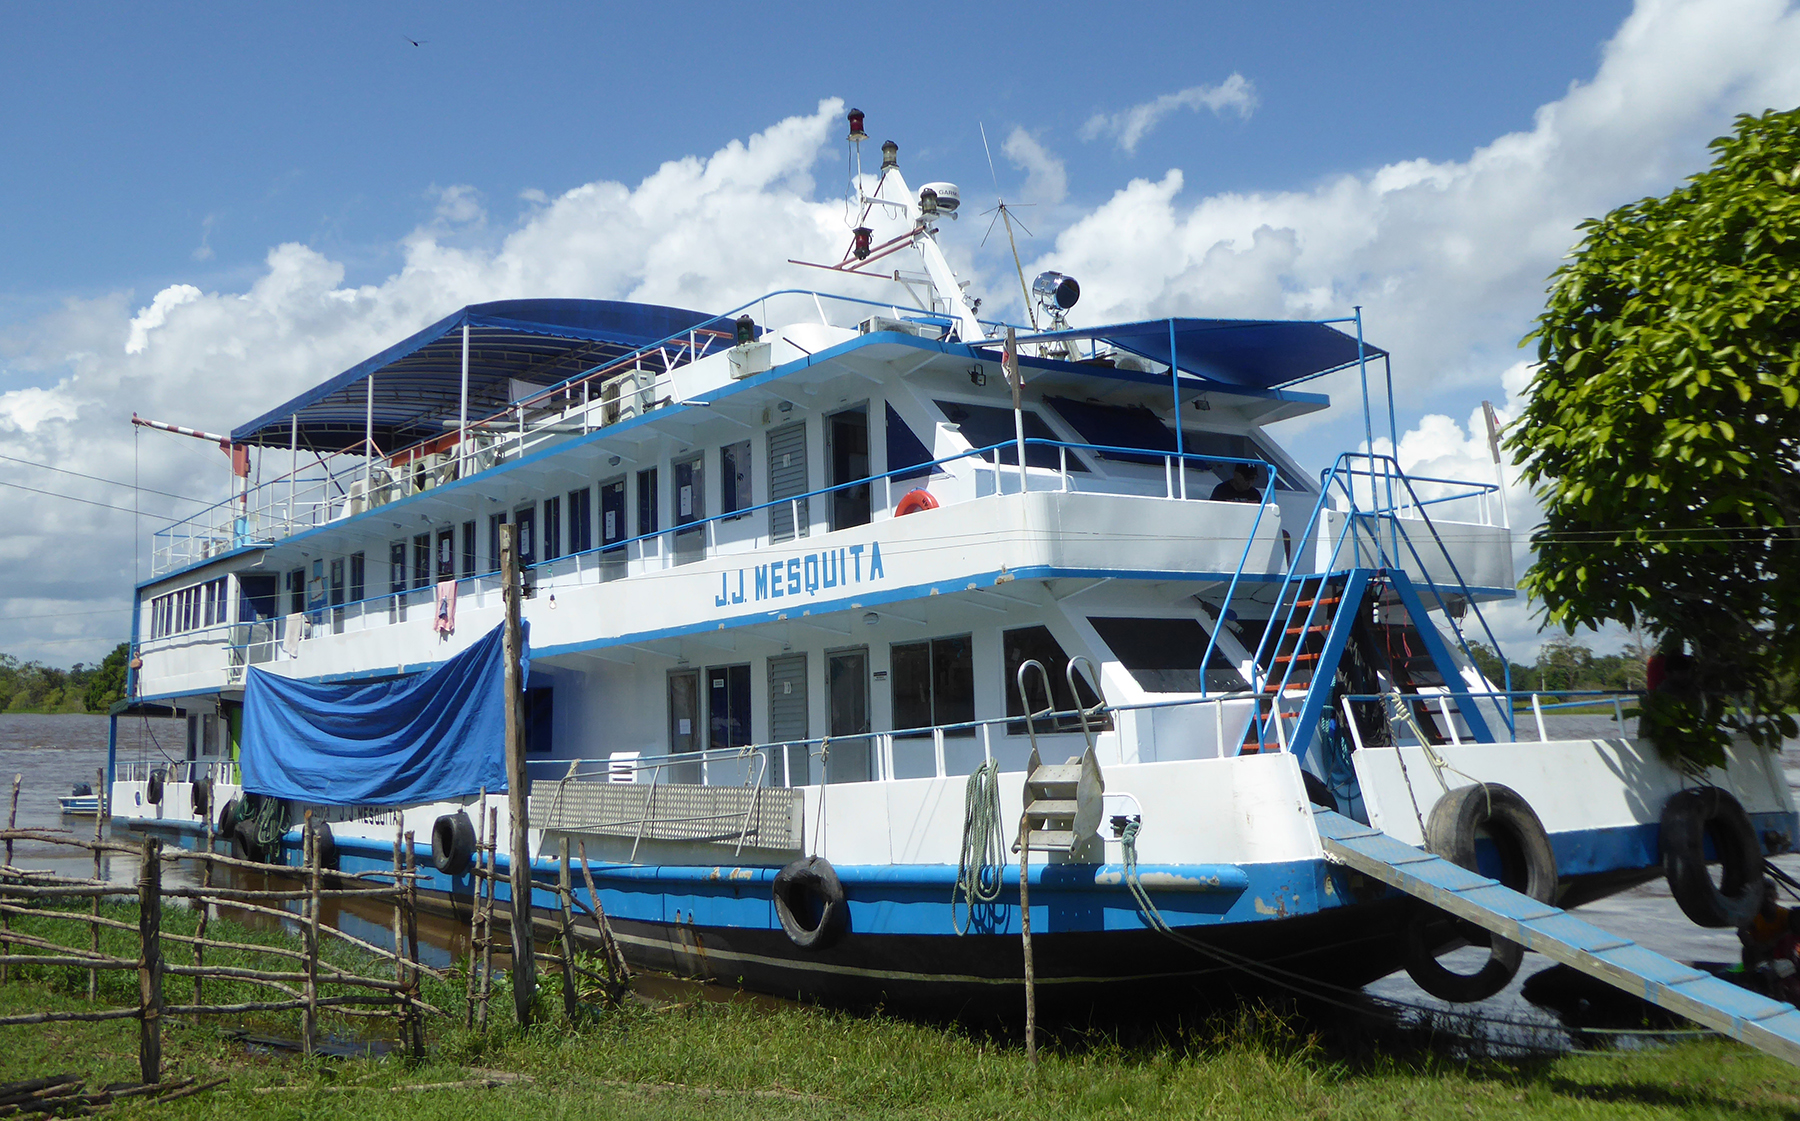 A white, double-decker boat with blue lining is docked along the grassy shore.